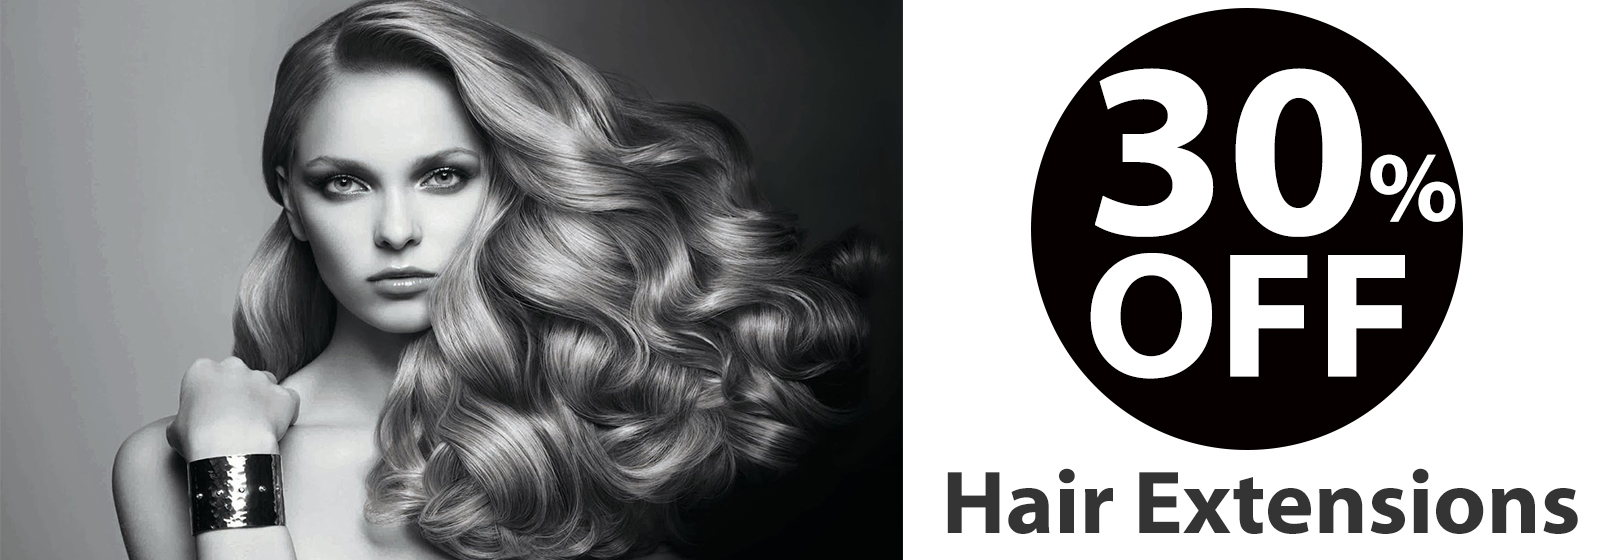 Hair Extensions Promo